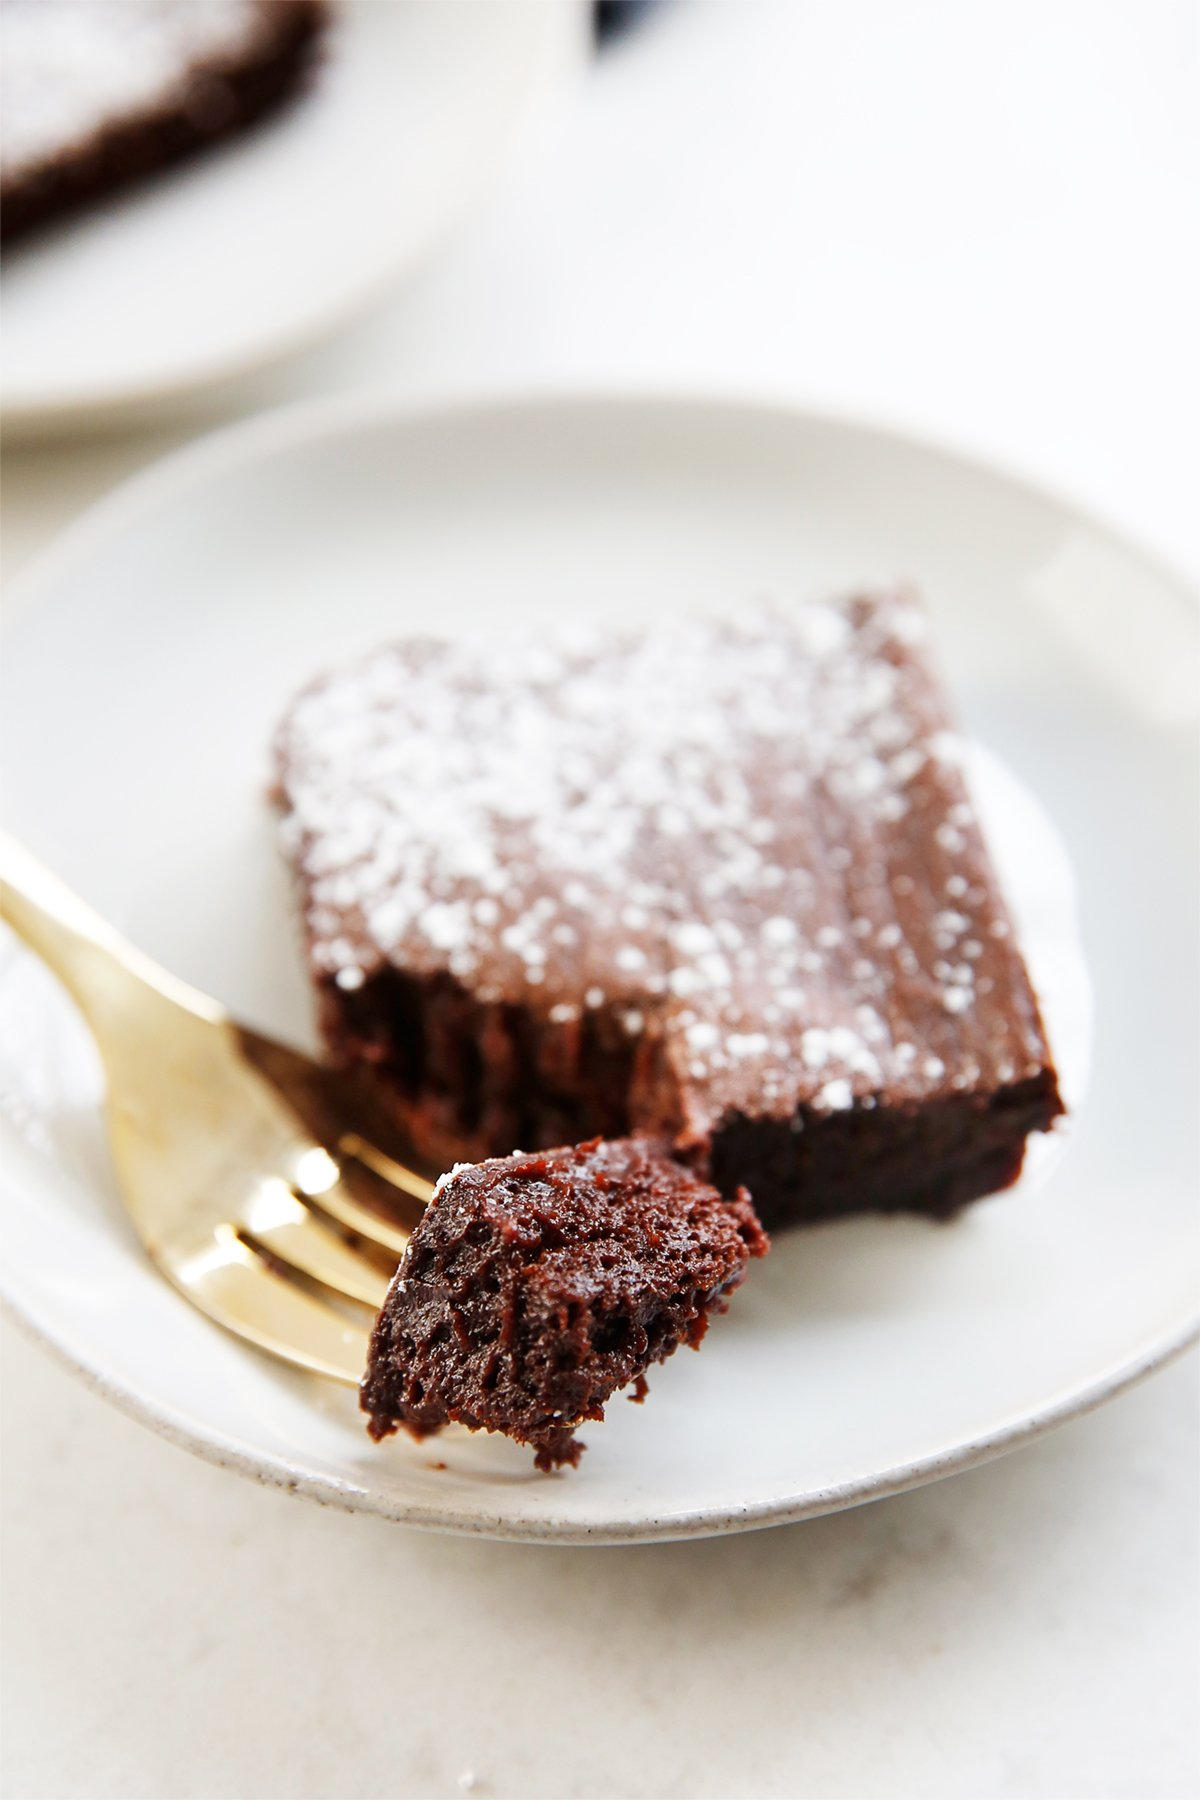 A forkful of fudge-y and dense brownies made with avocado on a plate.